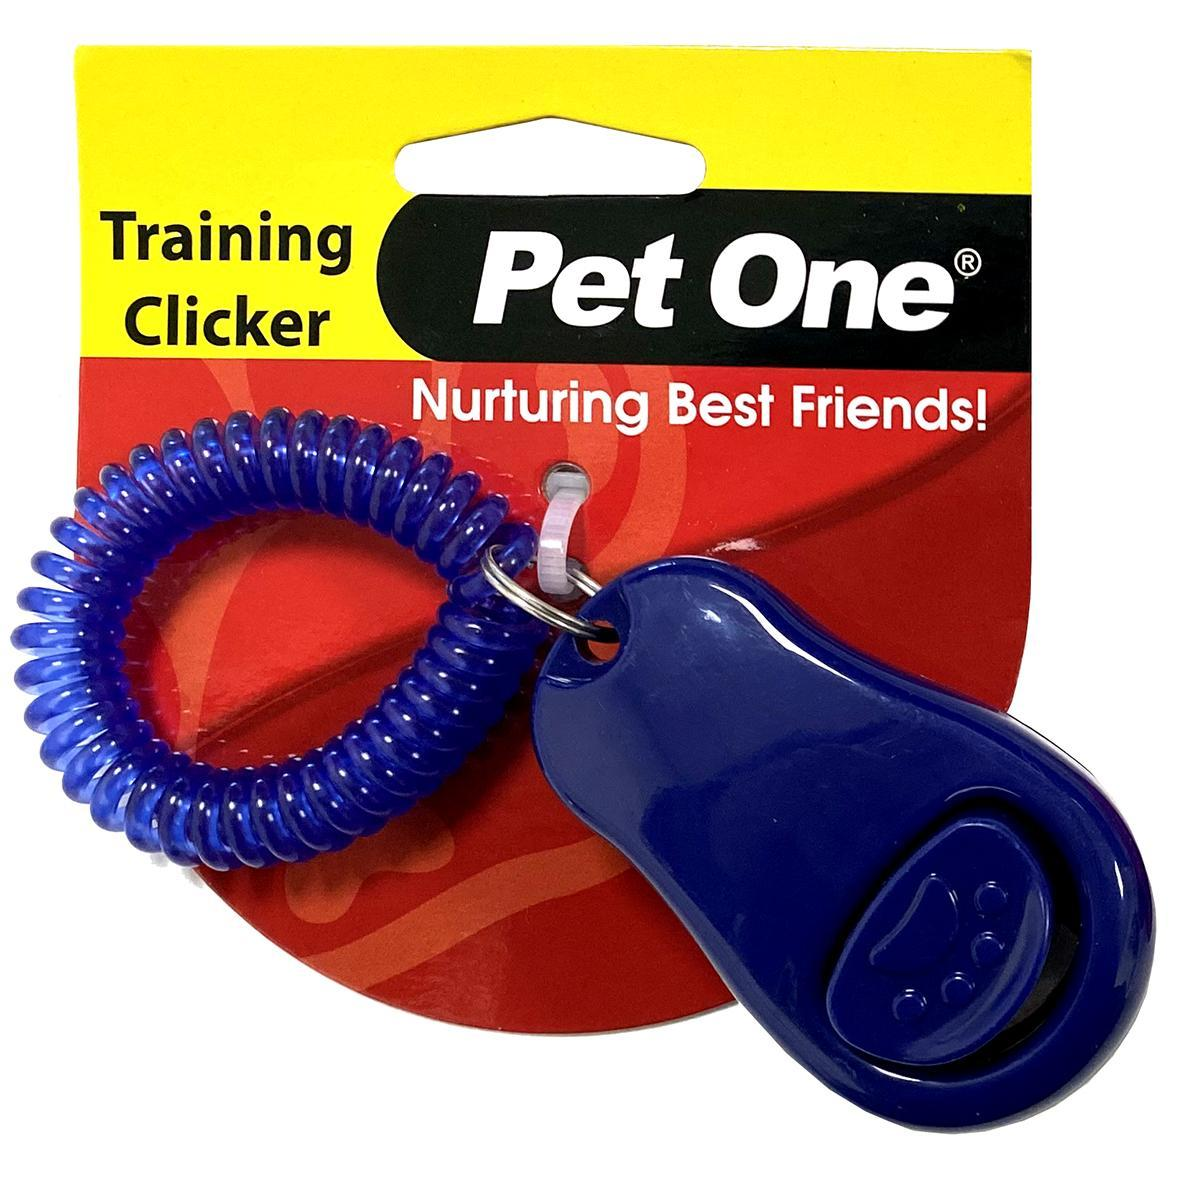 Pet One Pet One Training Clicker